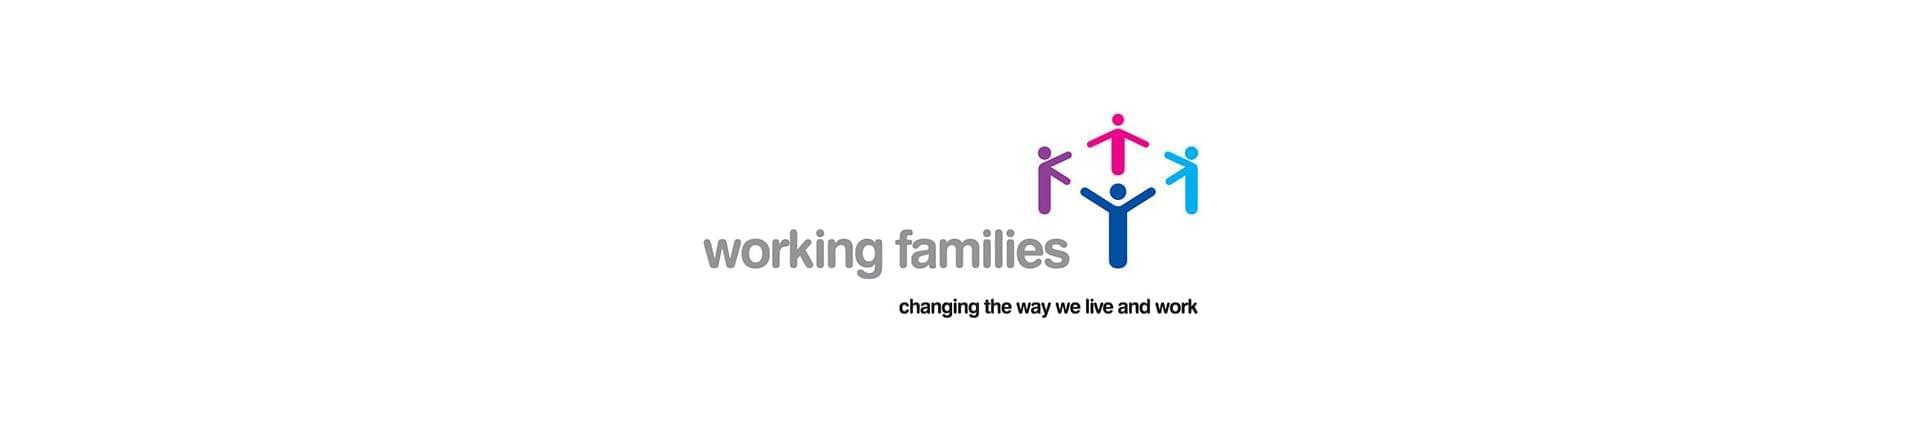 Working Families Logo. This has four multi-coloured stick figures standing with their hands outstretched in a circle and the text 'Working Families - changing the way we live and work'.